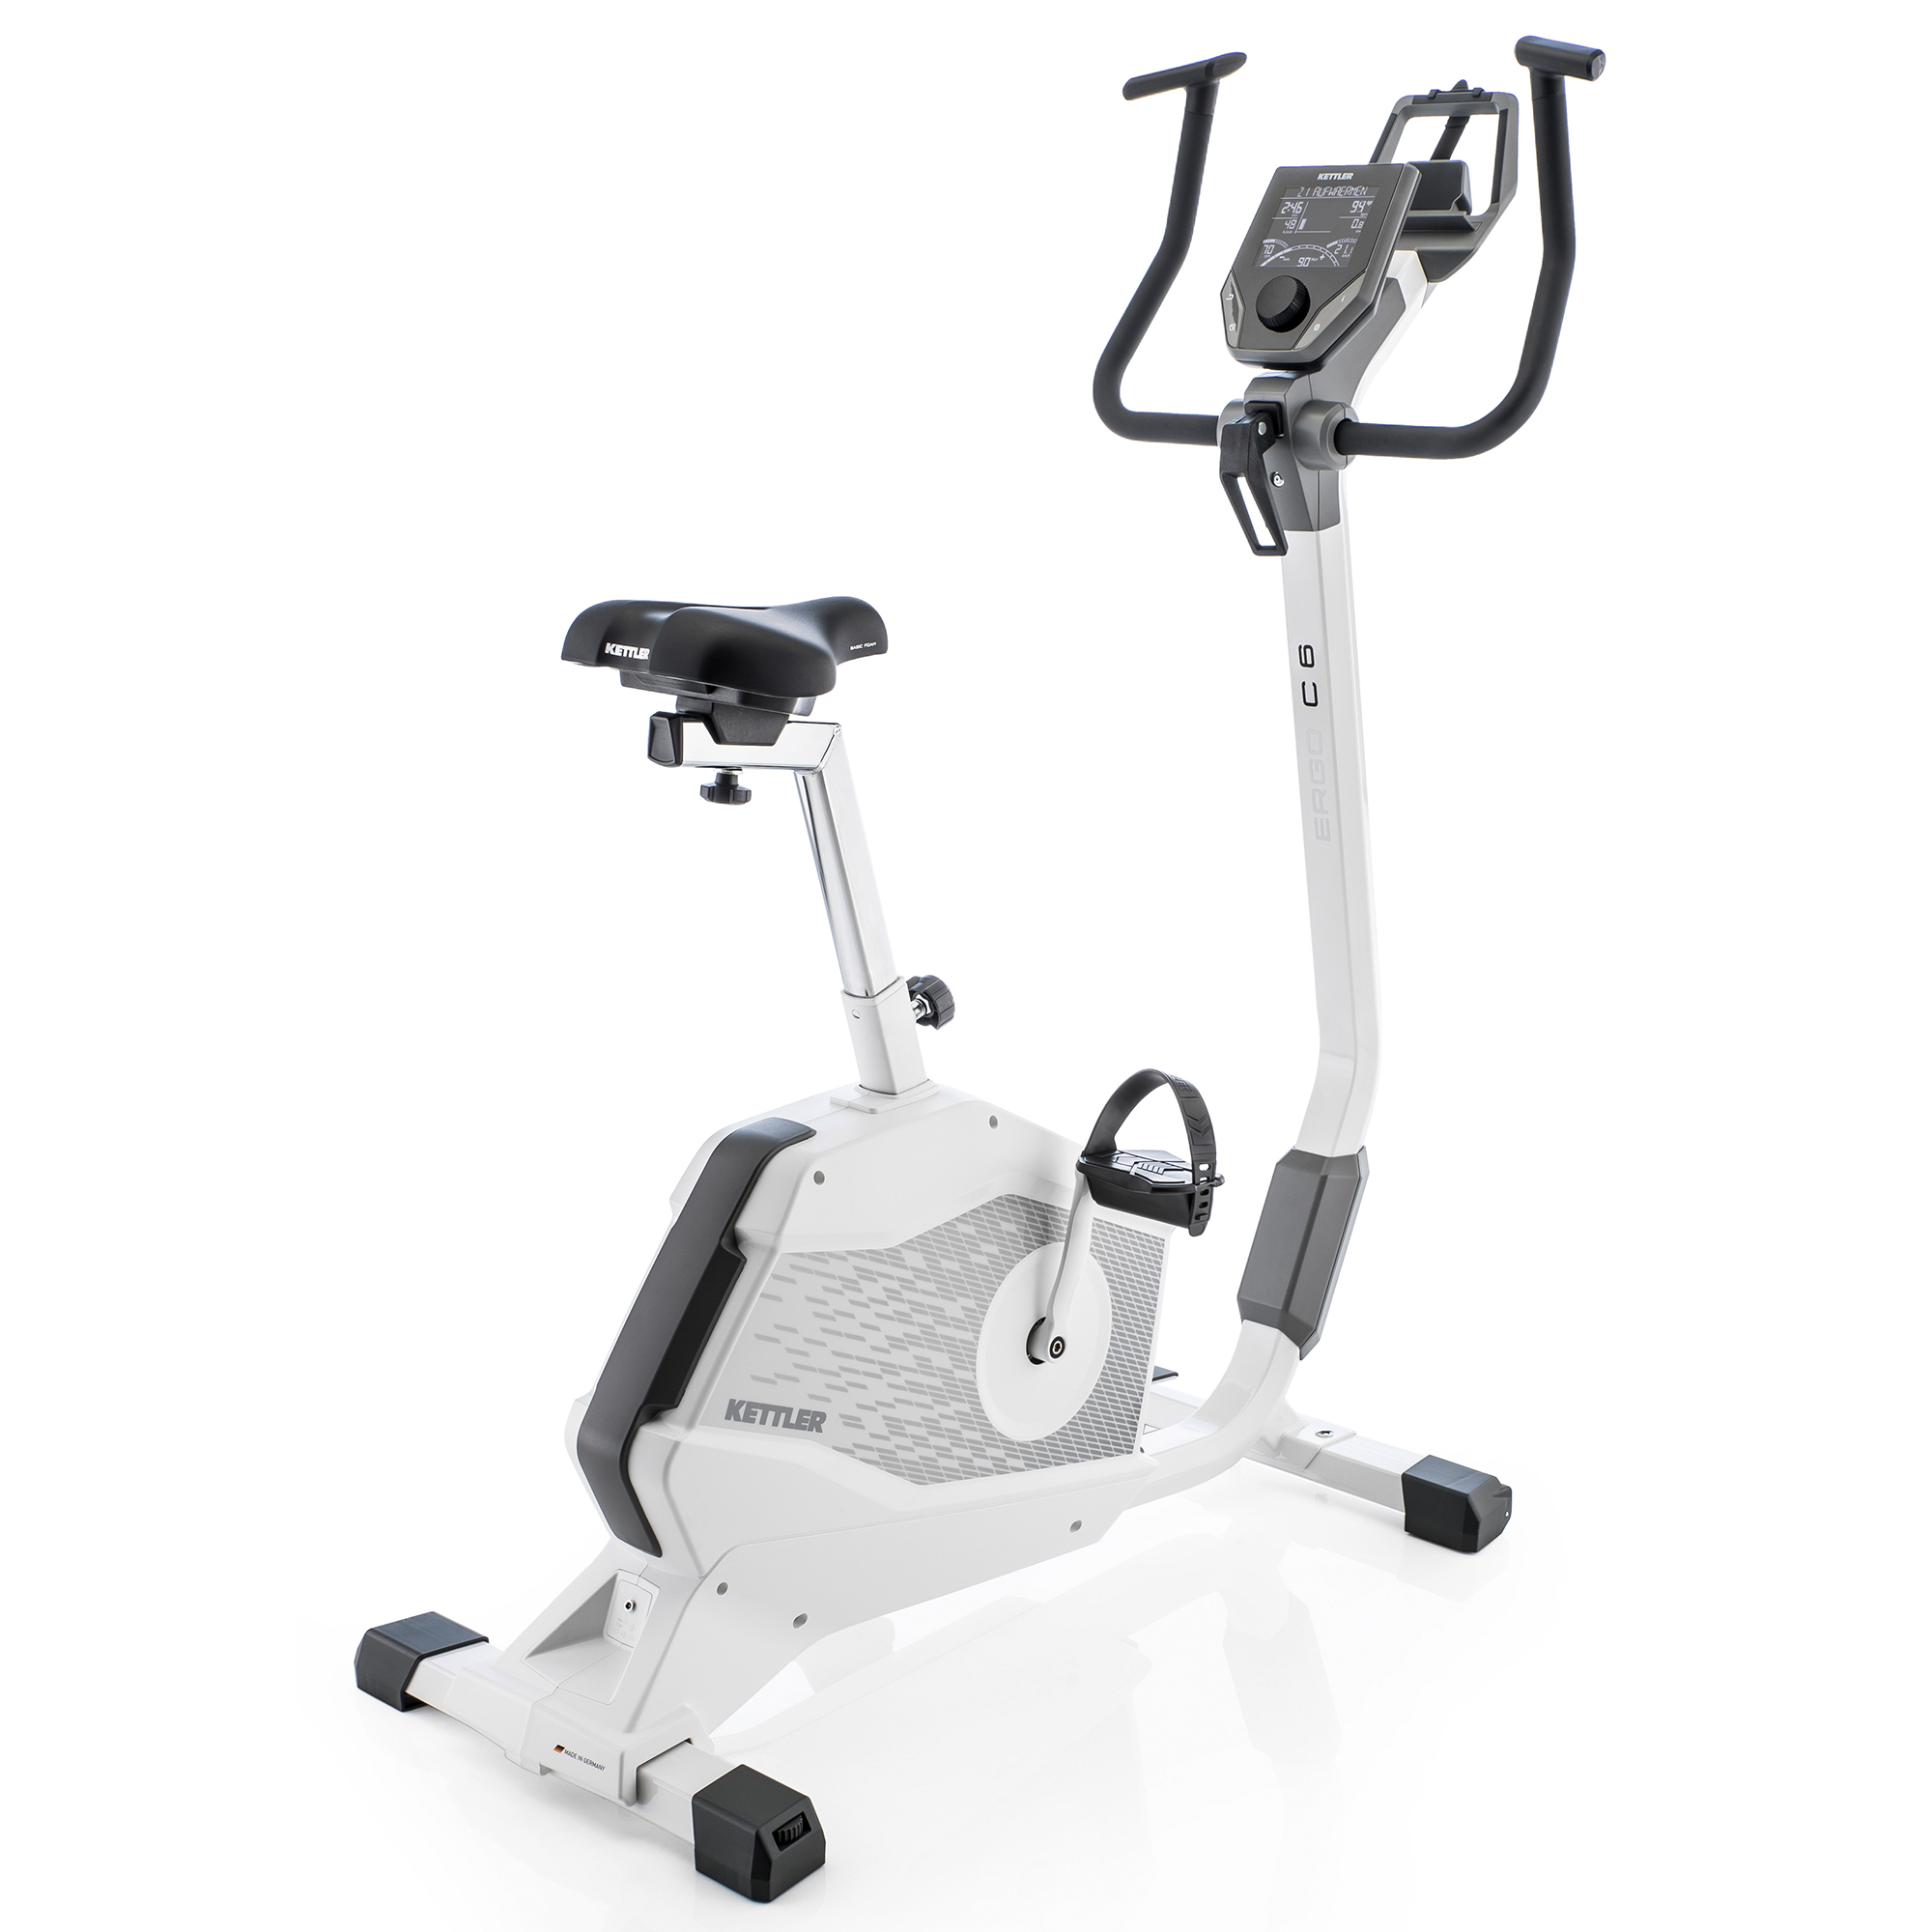 Kettler Ergo C6 Exercise Bike